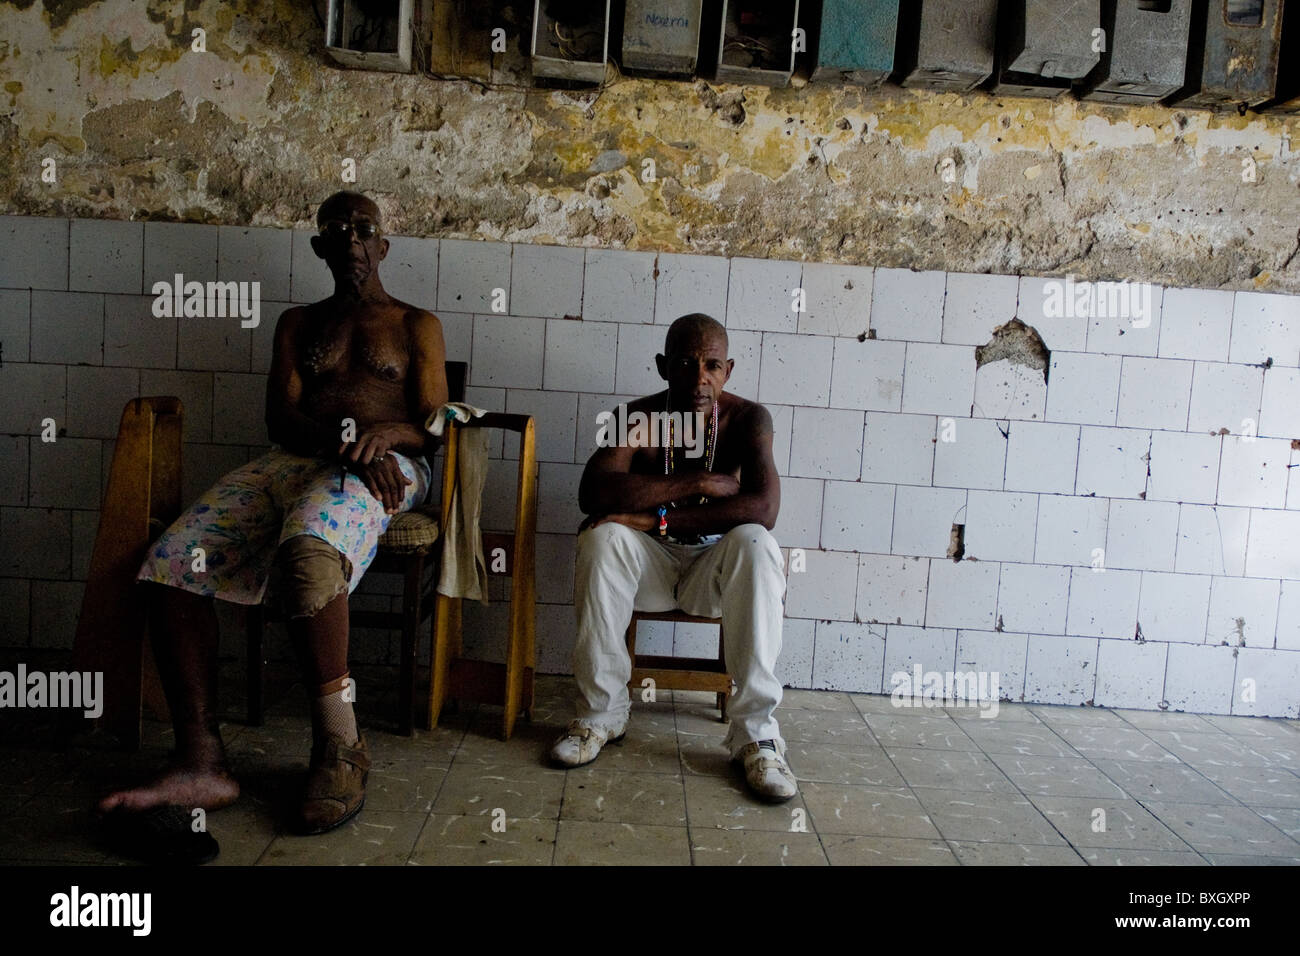 Cuban men, the Afro-Cuban religion belivers, sitting in a passage of the old house in Havana, Cuba. Stock Photo